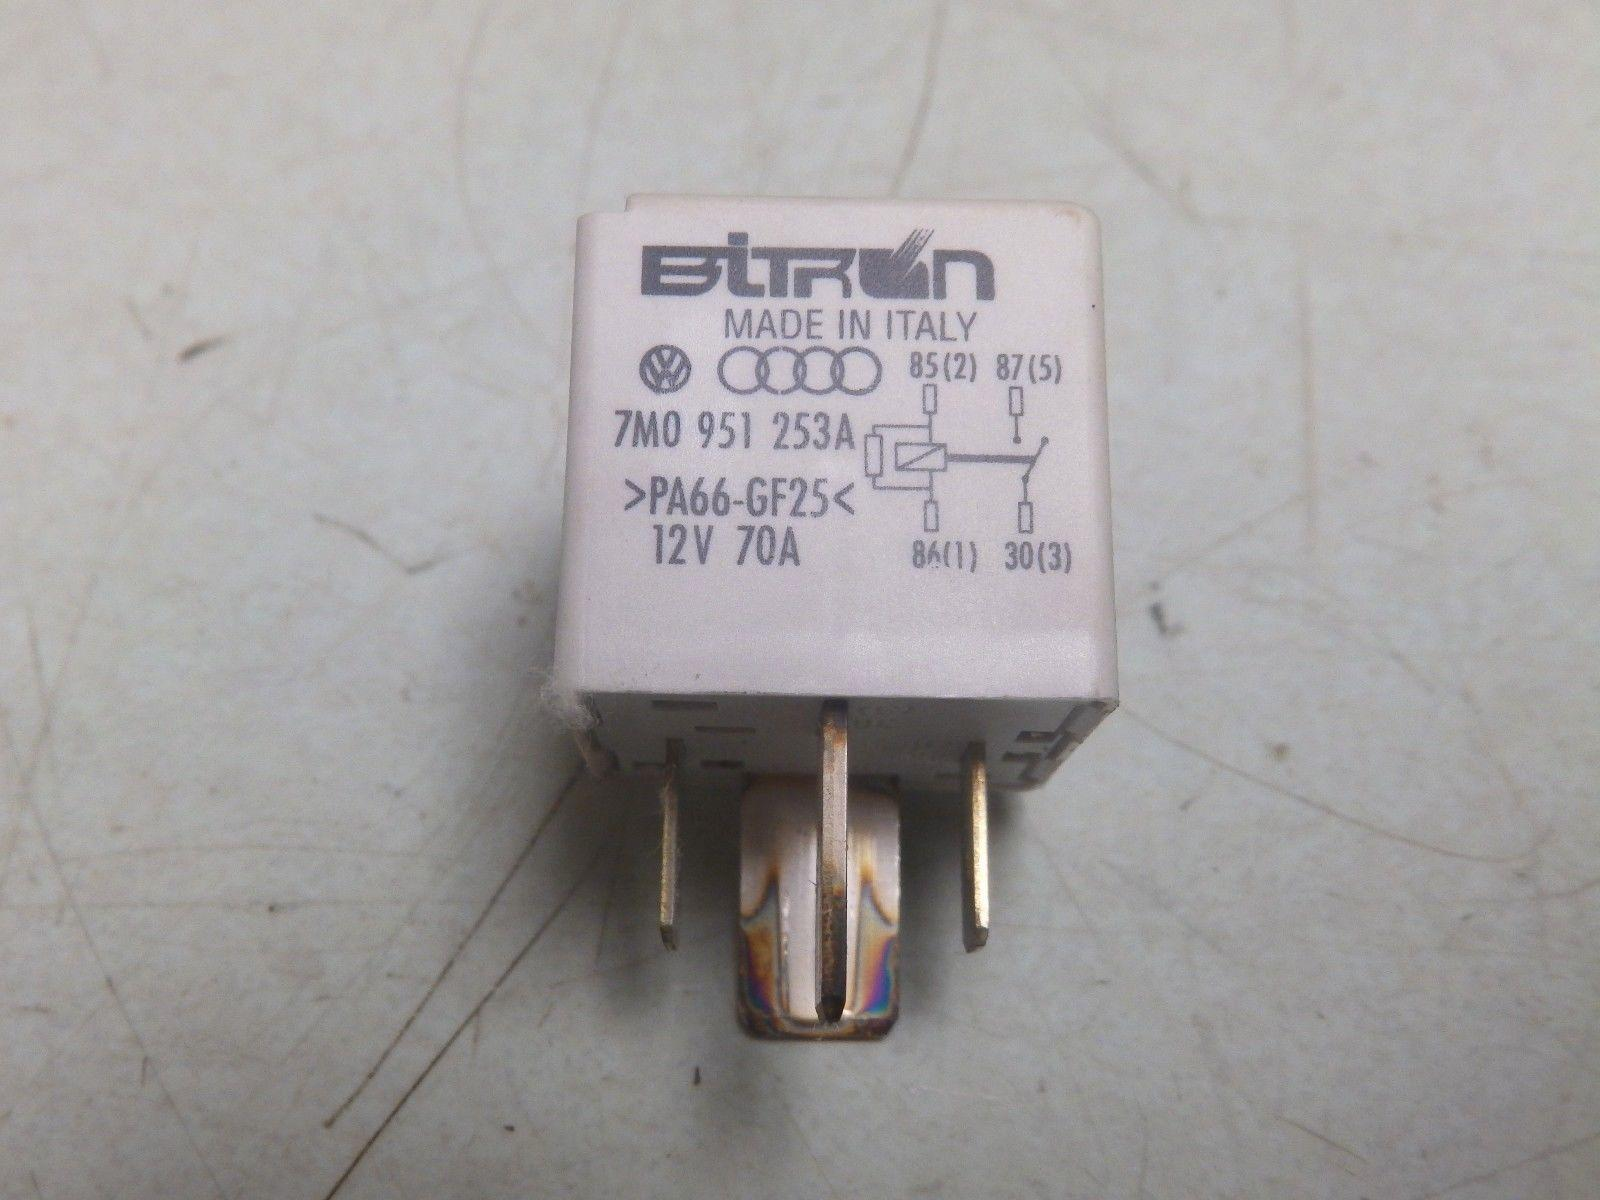 Amp Relay Wiring A Fan on 100 amp relay, 3 pole relay, 10 amp relay, 80 amp relay, 75 amp relay, 40 amp relay, 120 amp relay, 20 amp relay, 30 amp relay, 5 amp relay, 90 amp relay, 15 amp relay, 60 amp relay, 50 amp relay, 2 pole relay, contactor relay, 3 amp relay, 12 volt relay, 200 amp relay, 480 volt relay,